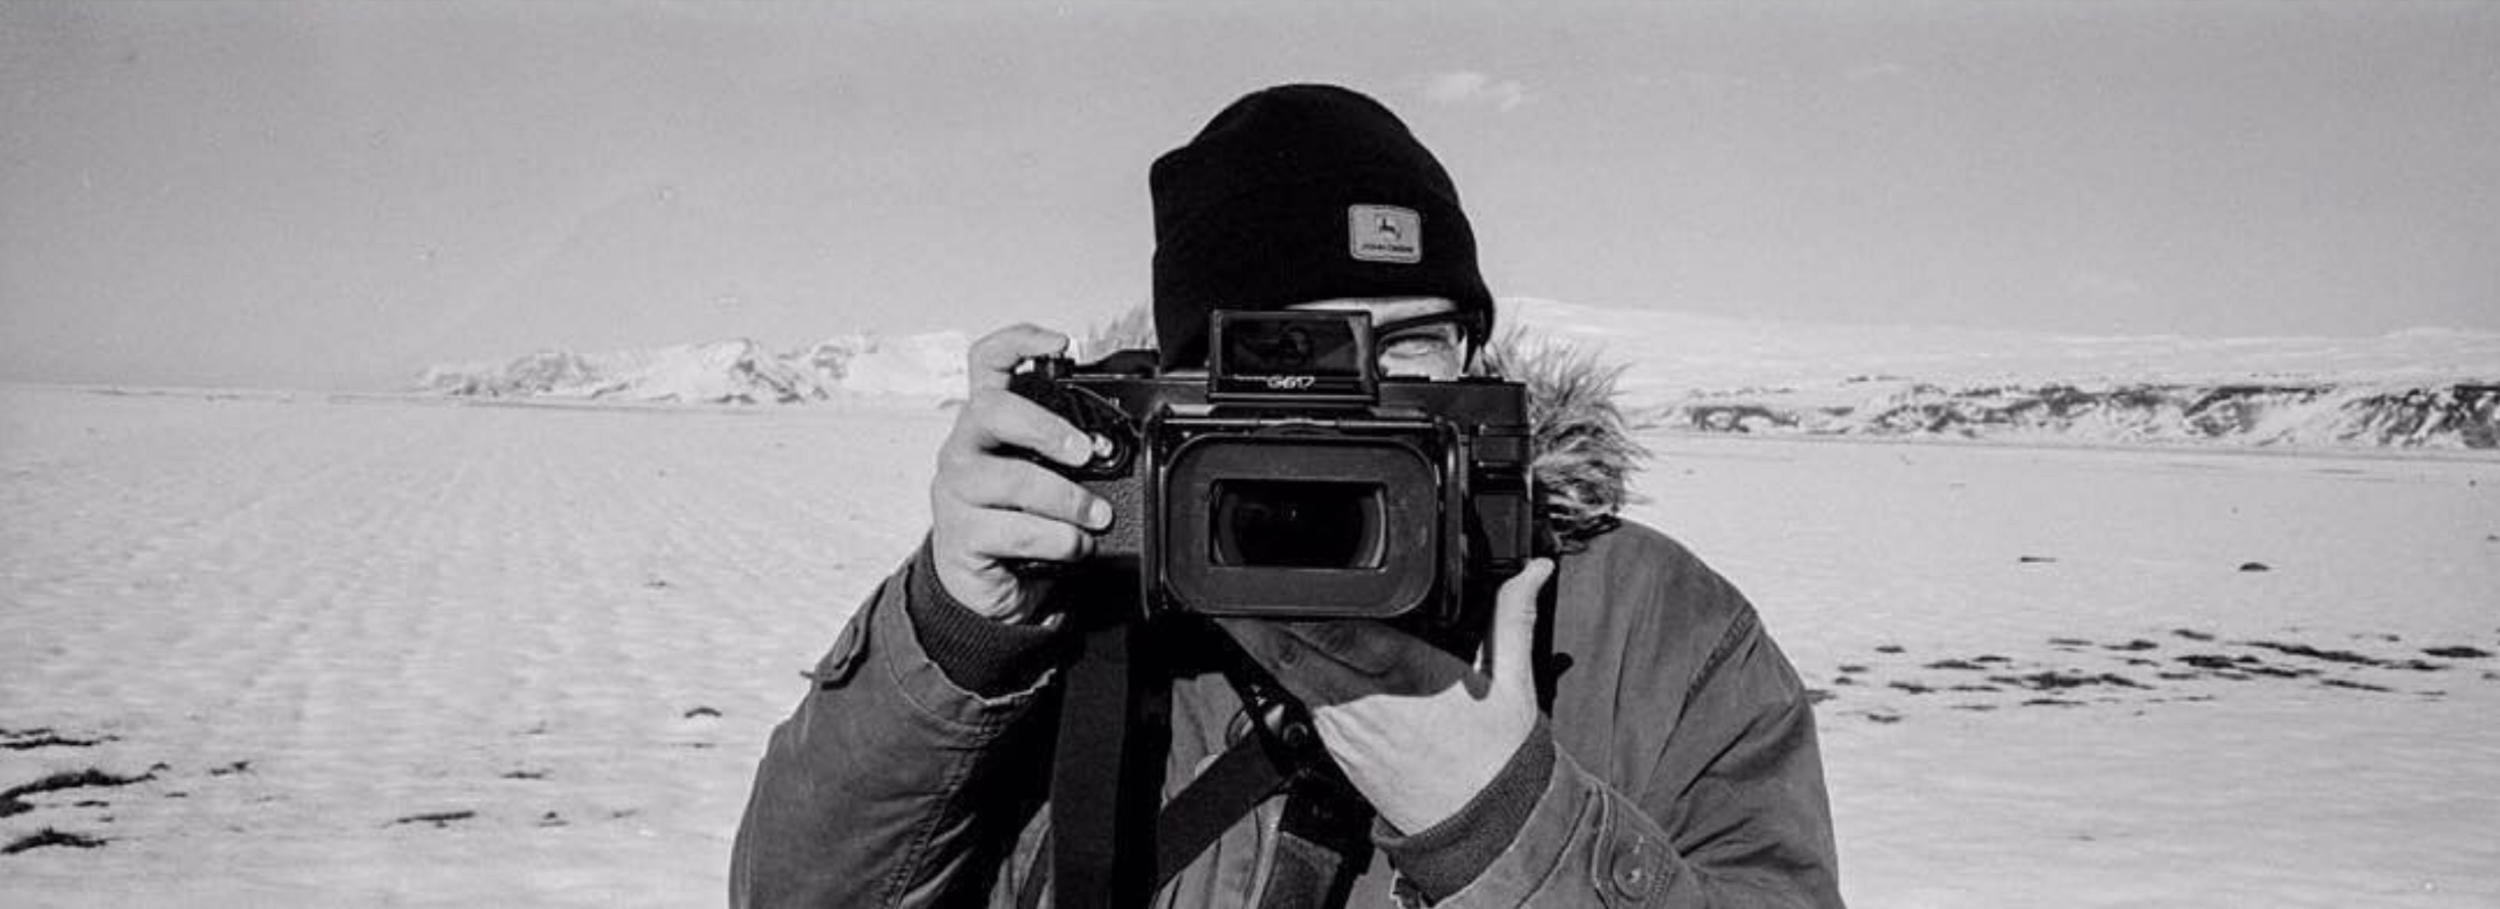 This is me in Iceland with the Fuji G617, taken by my good friend Vish from @camerafilmphoto